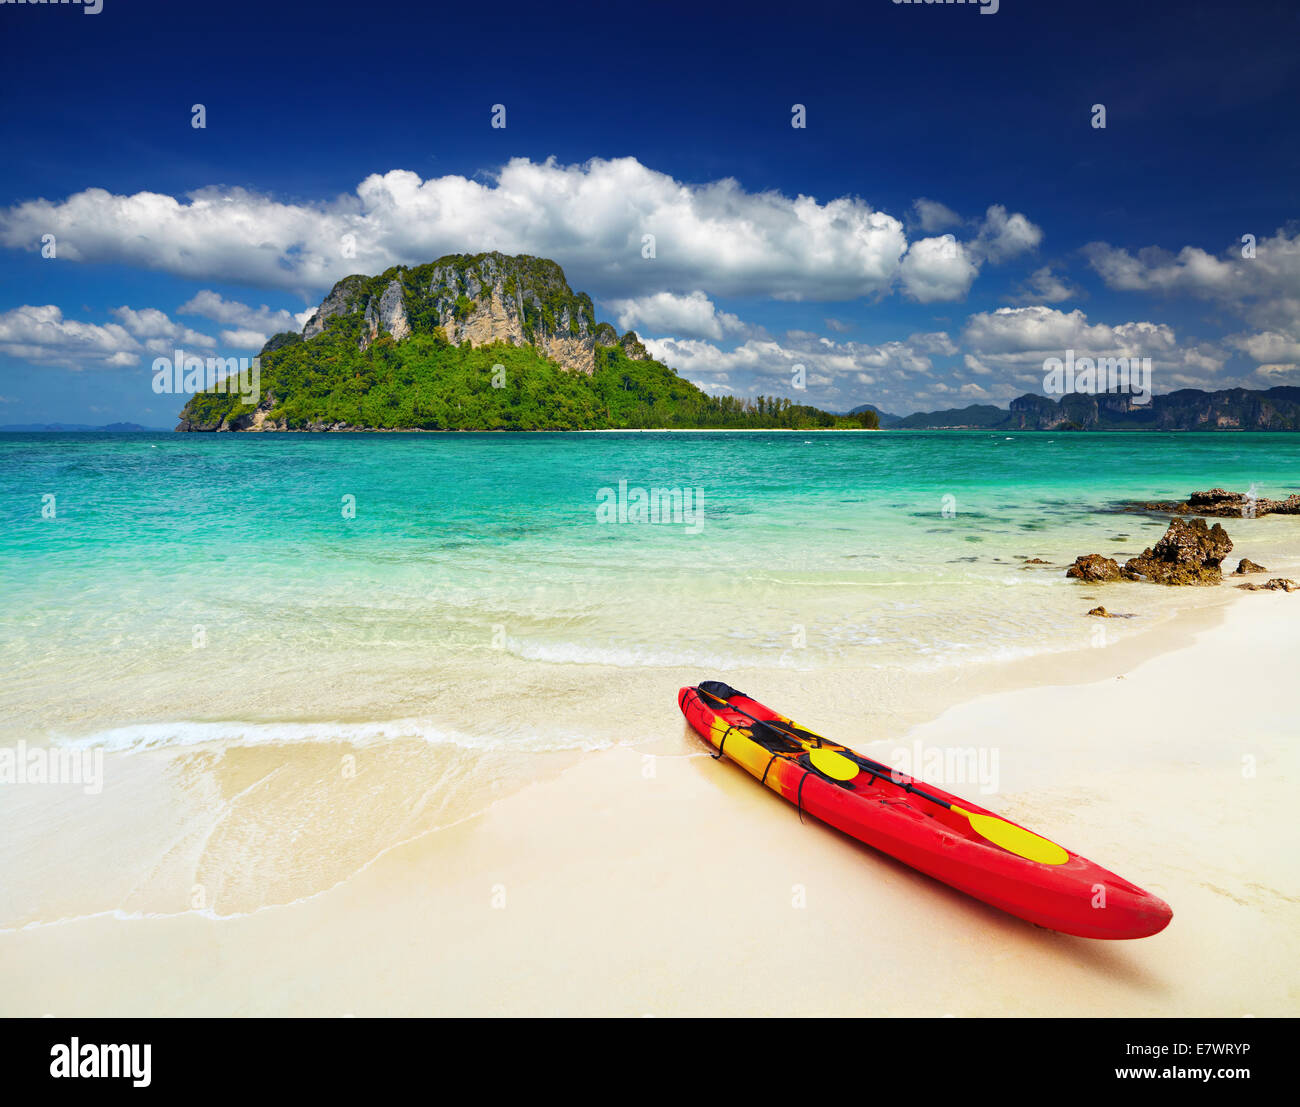 Colorful kayak on the tropical beach, Thailand - Stock Image